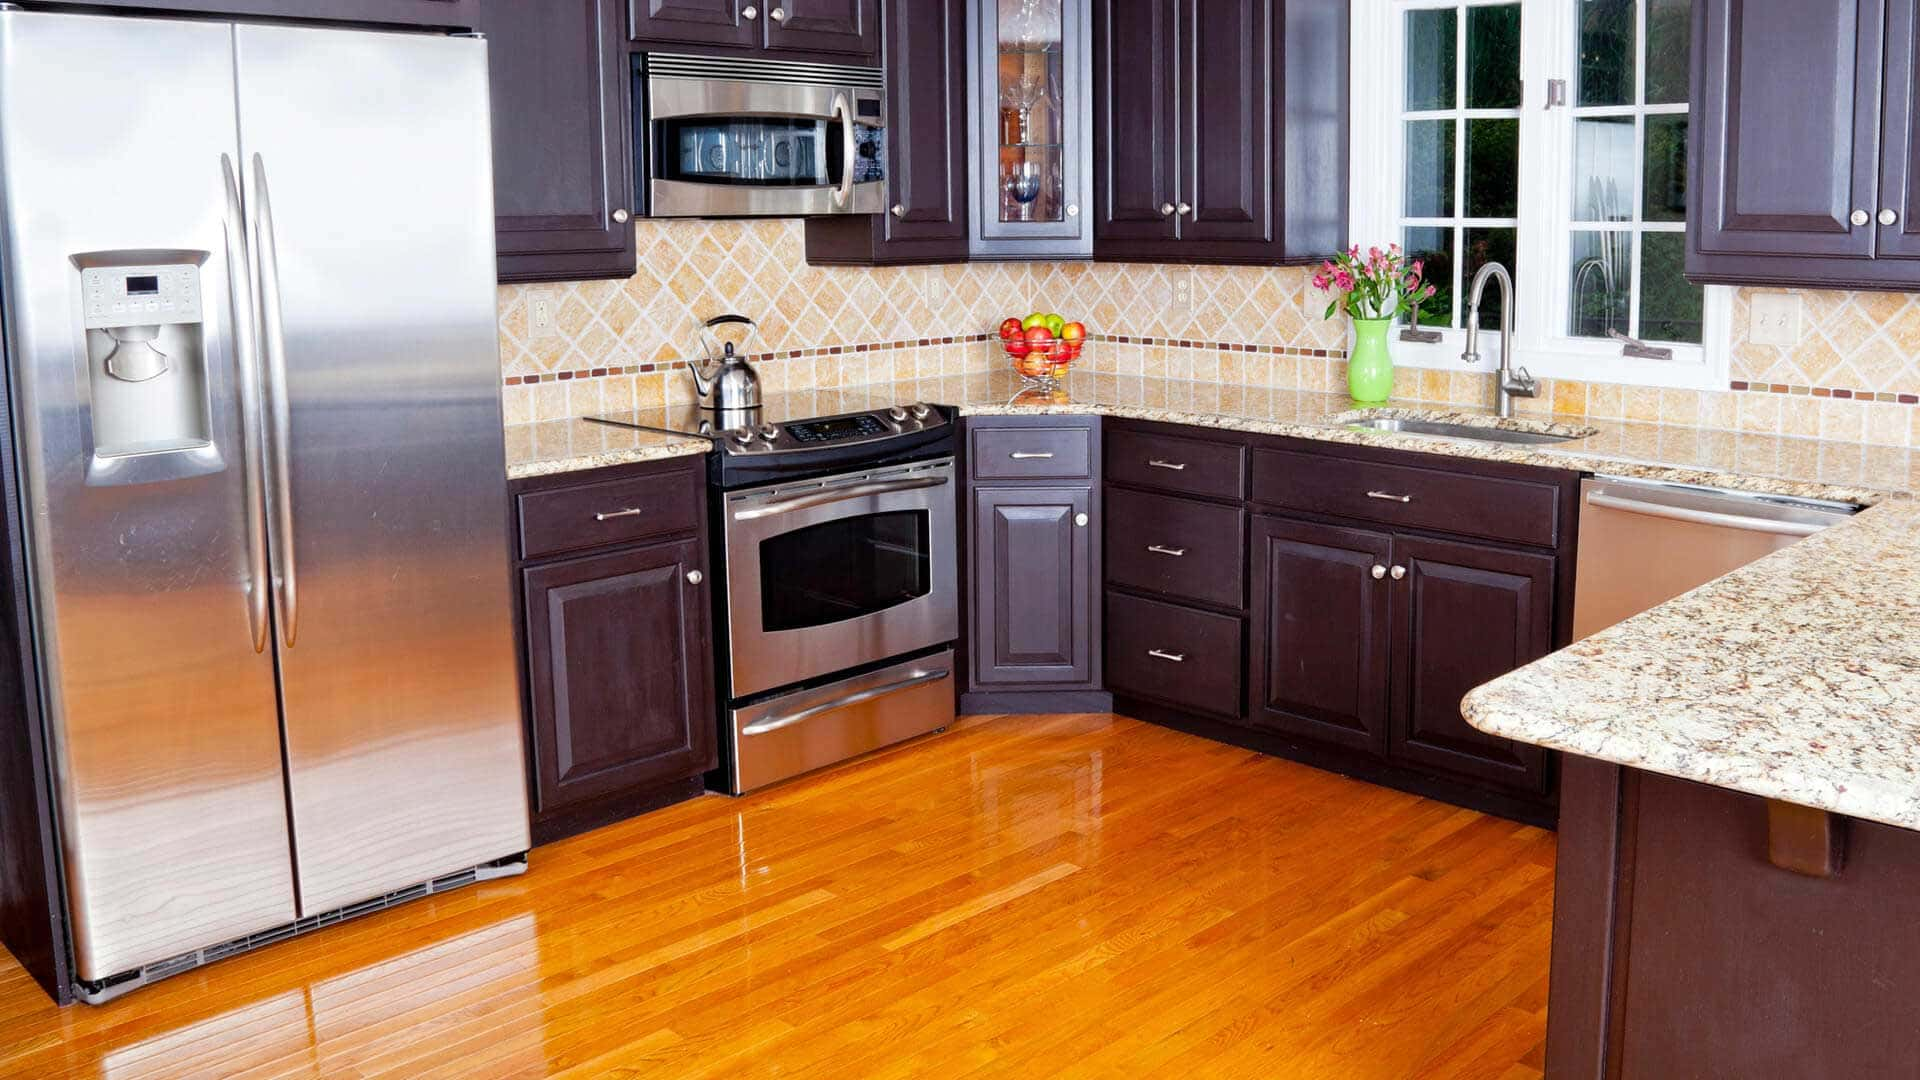 We make your kitchen cabinets in our factory, so it fits your space and lifestyle